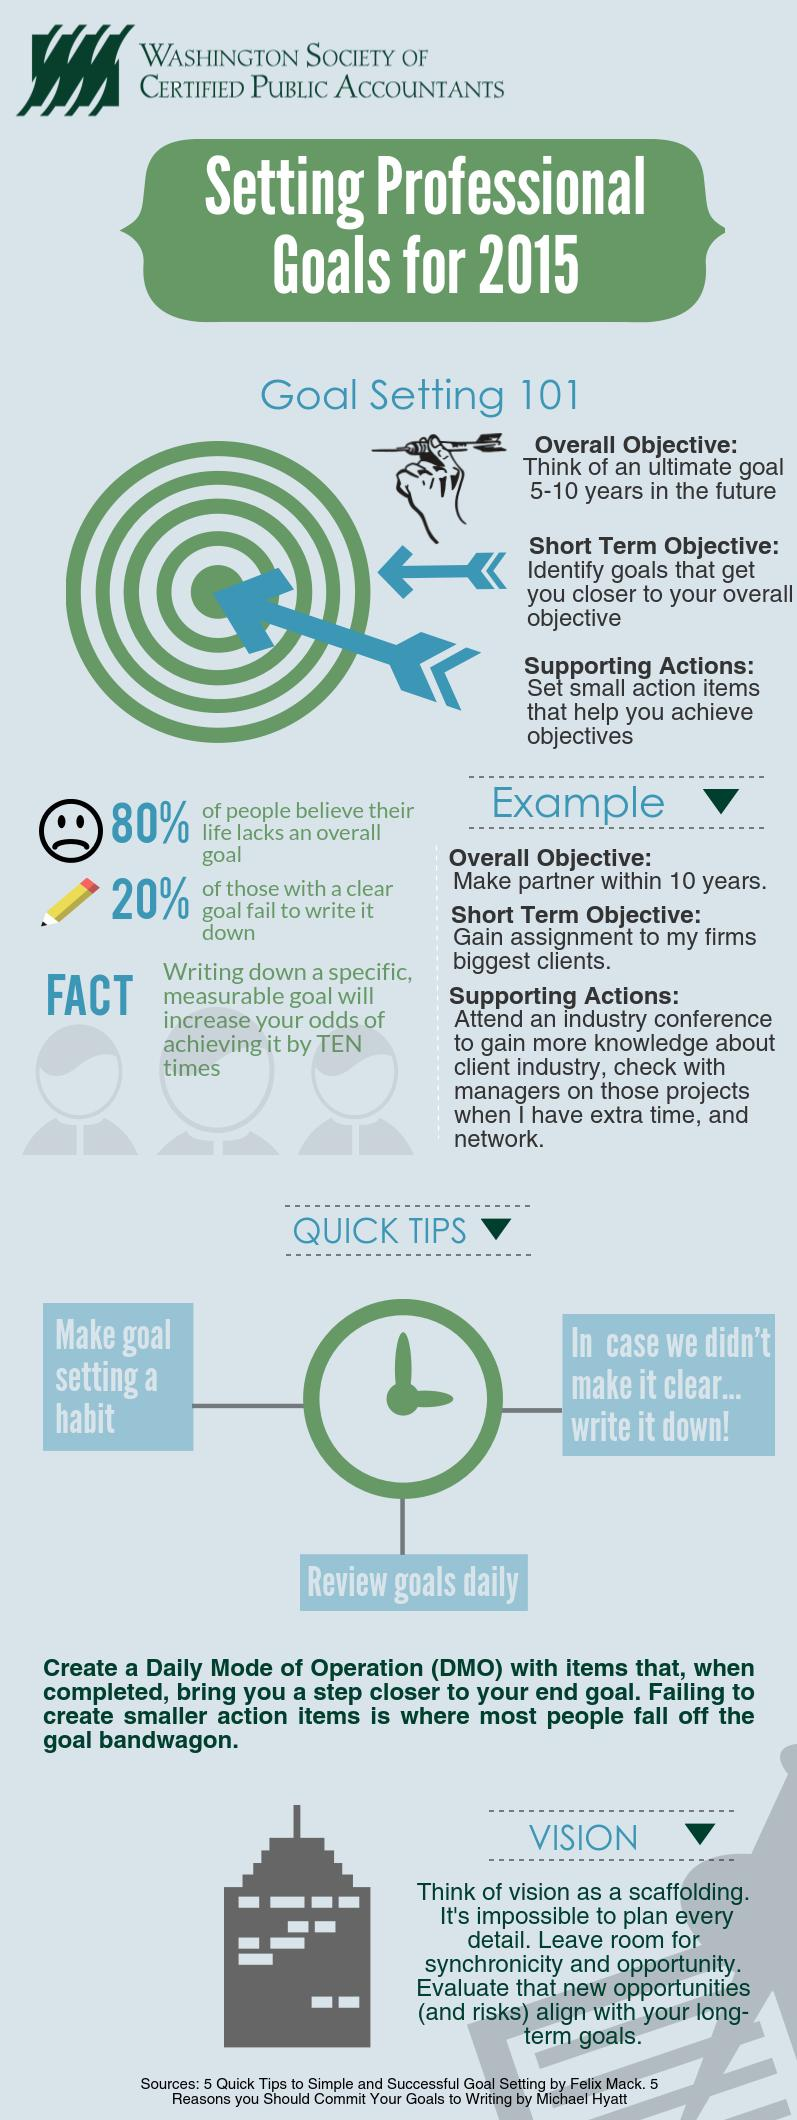 Setting Professional Goals for 2015 Infographic